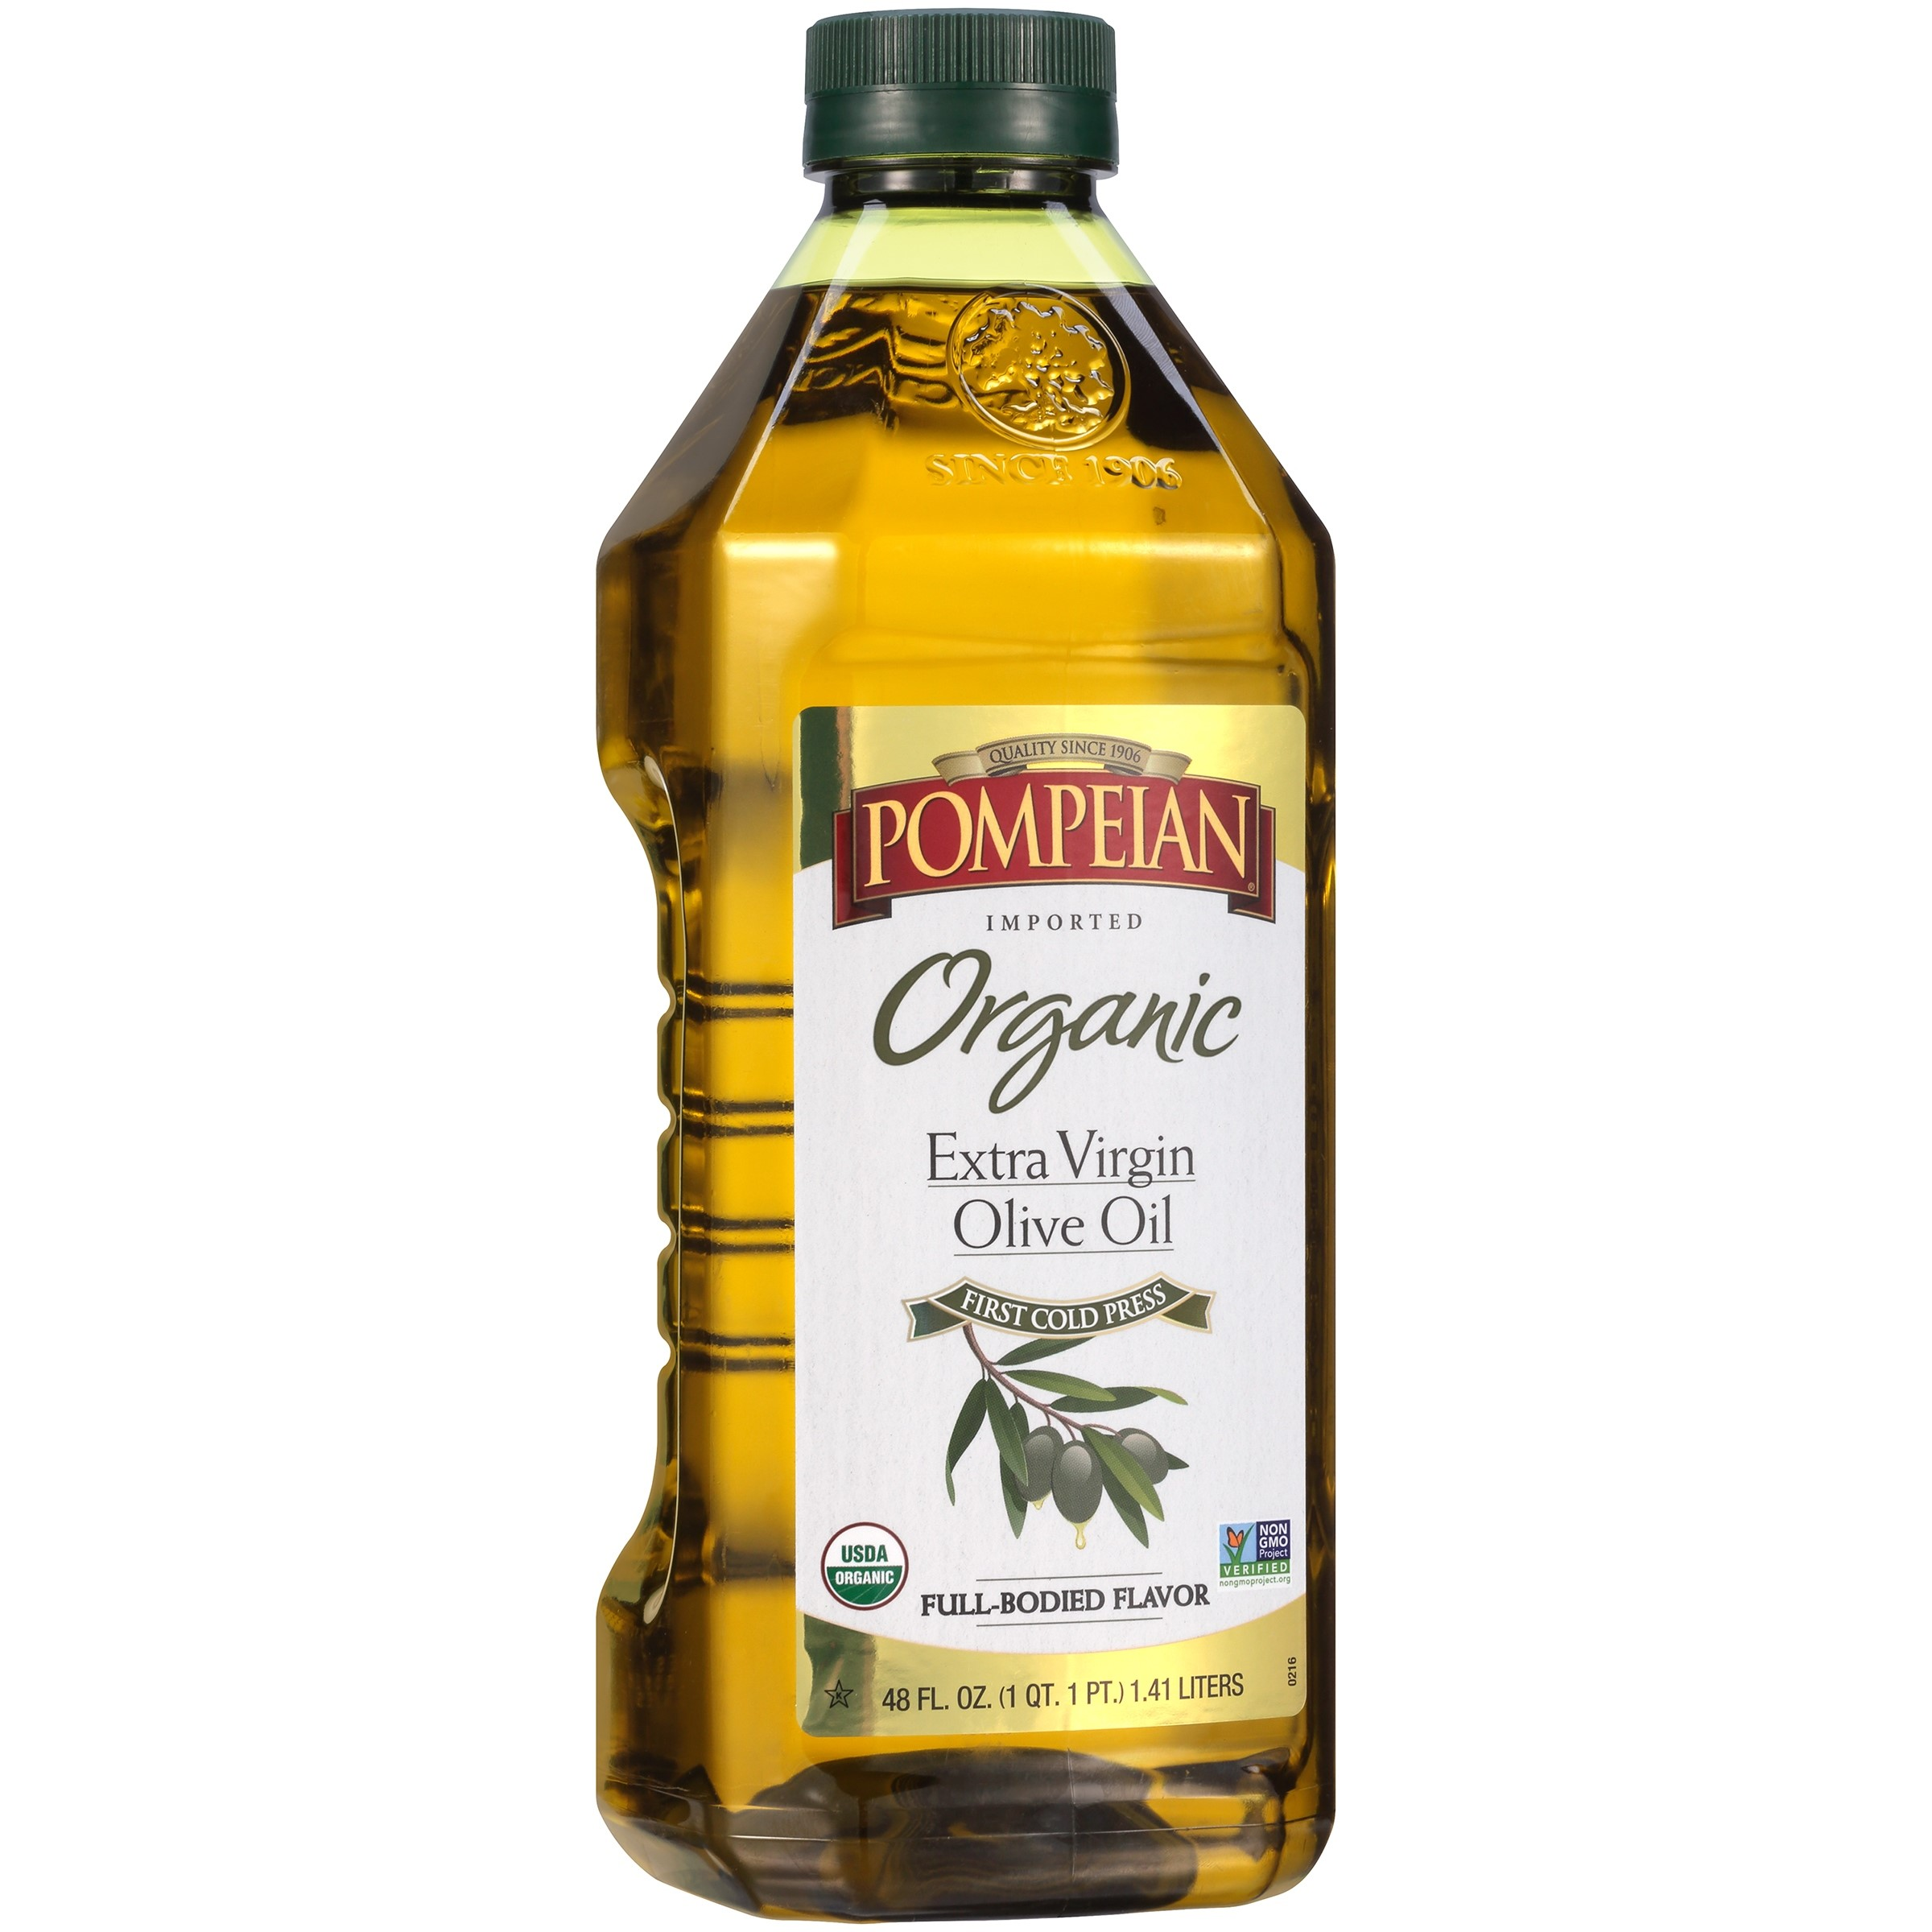 Pompeian® Organic Extra Virgin Olive Oil 48 fl. oz. Bottle - Walmart.com